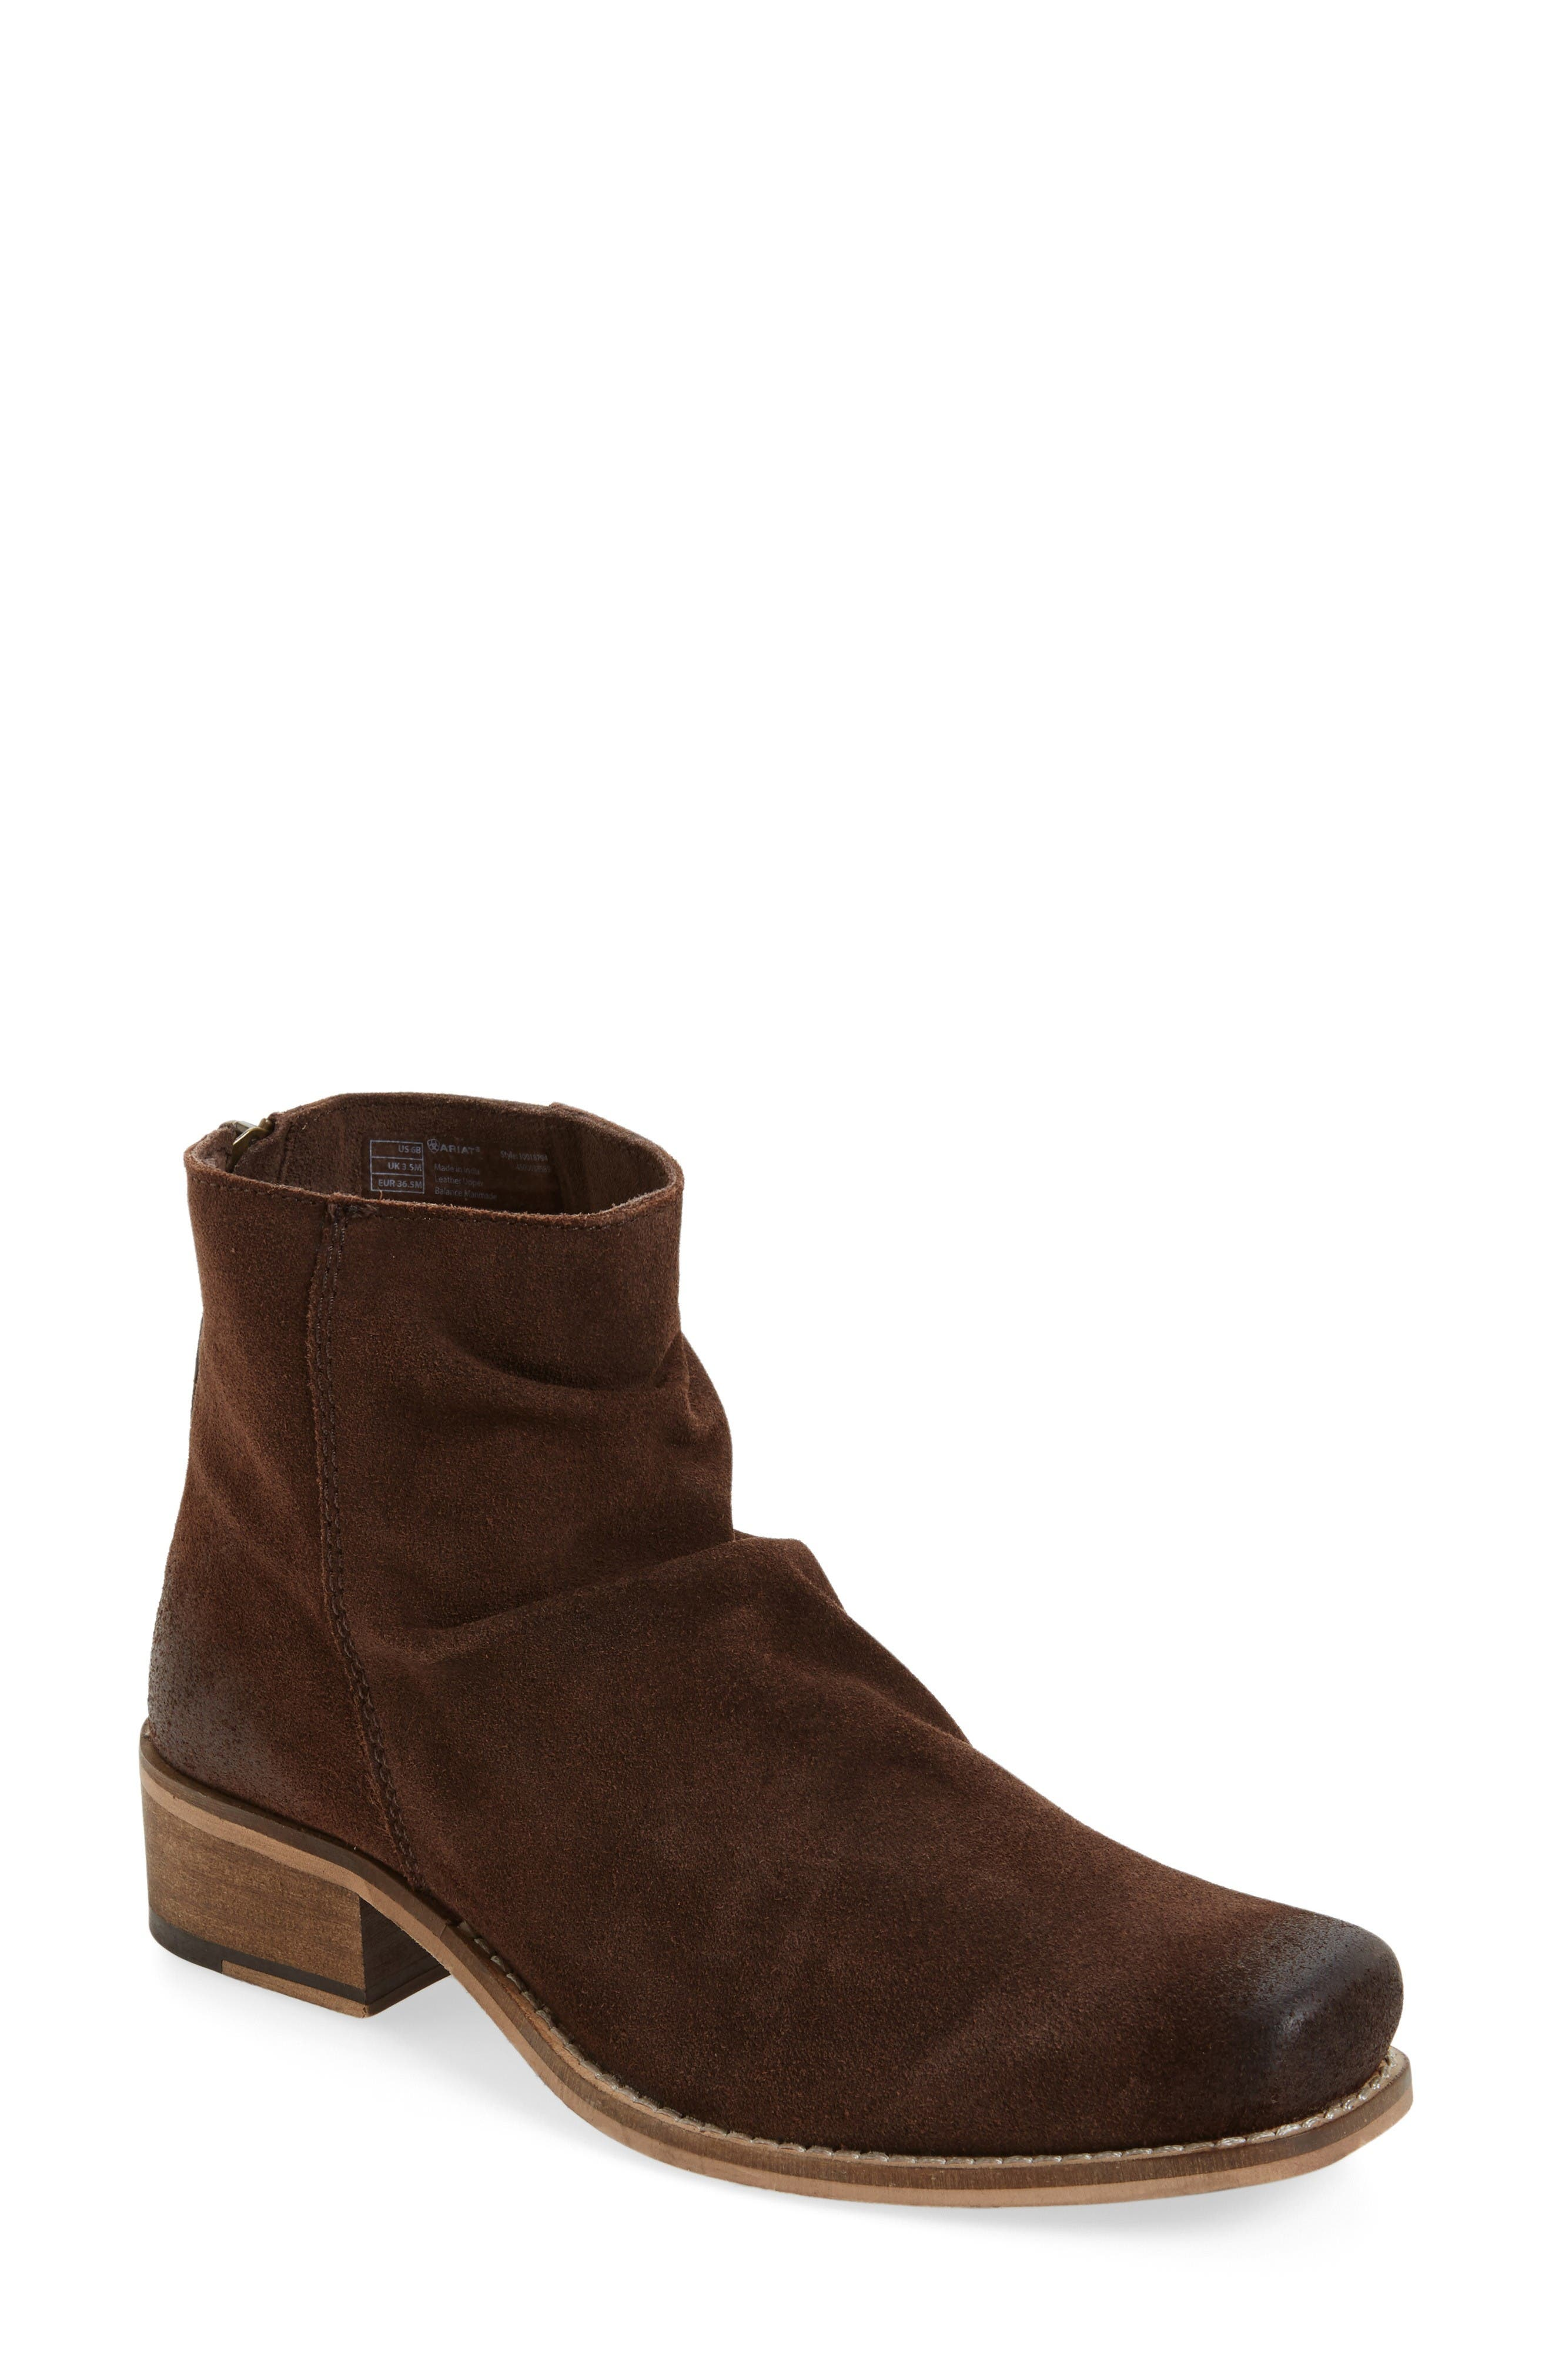 Unbridled Sloan Slouchy Bootie,                             Main thumbnail 1, color,                             Dark Brown Leather